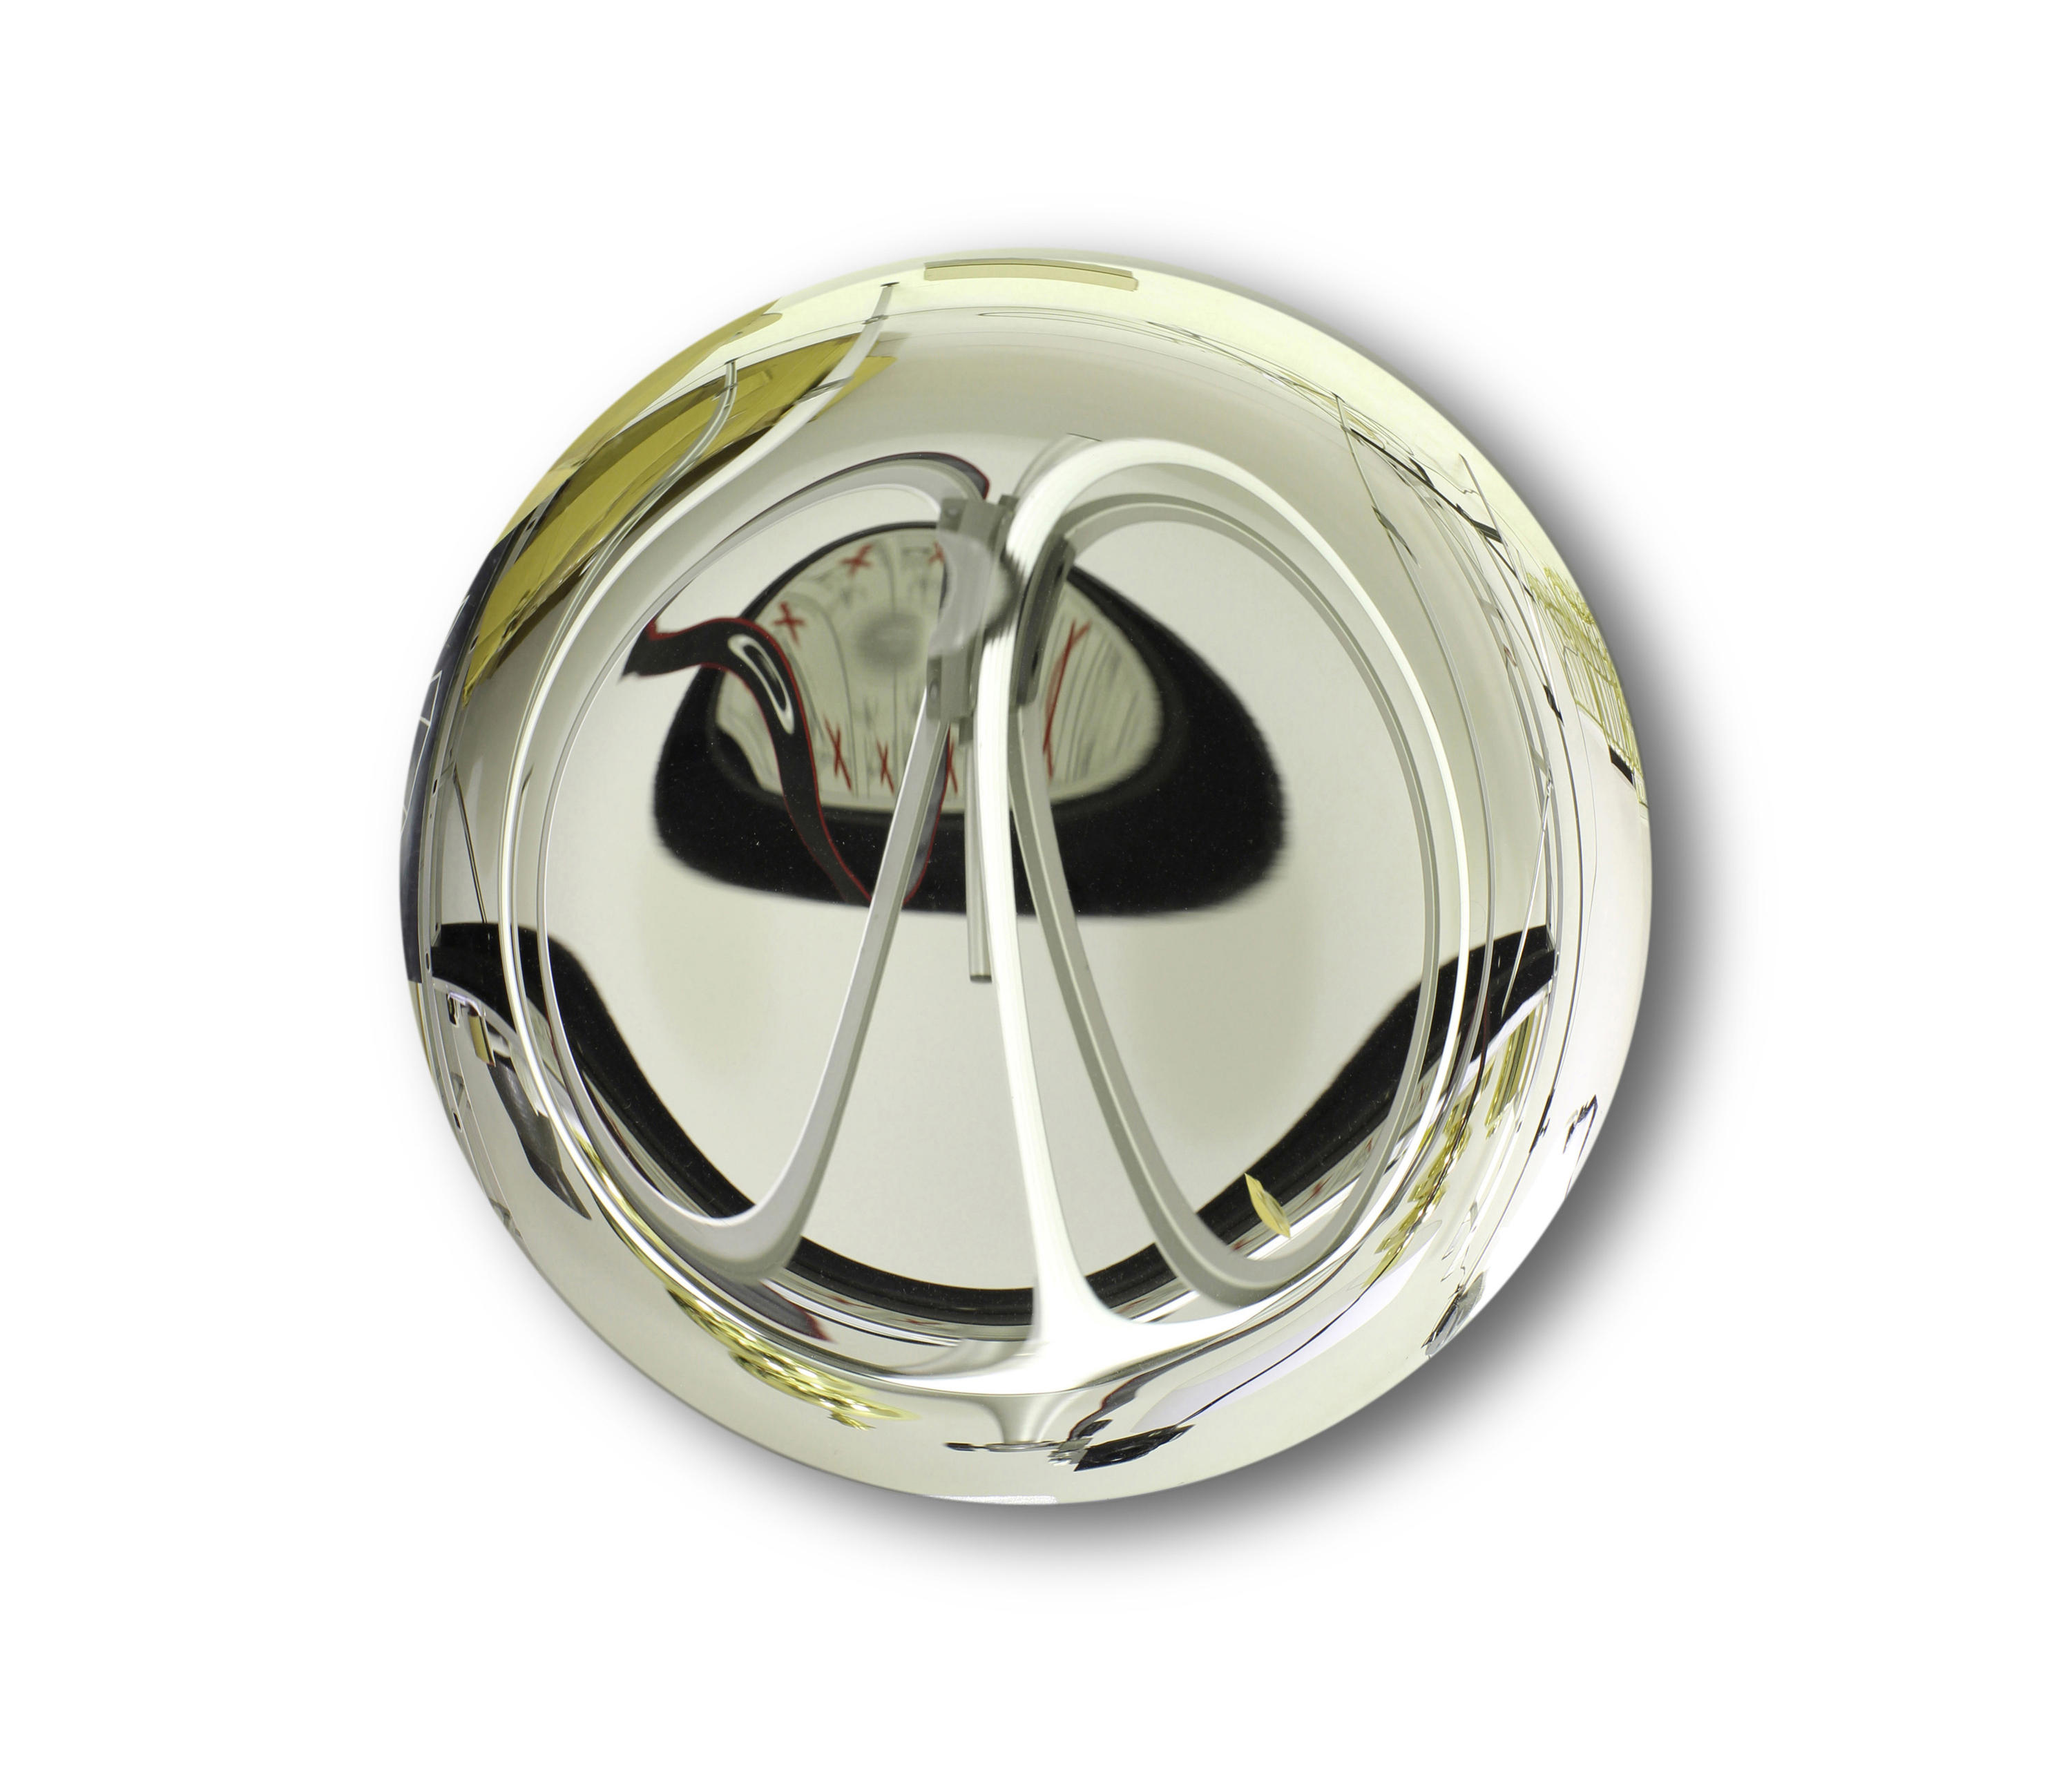 Oracle silver concave mirror mirrors from martin huxford for Concave mirror